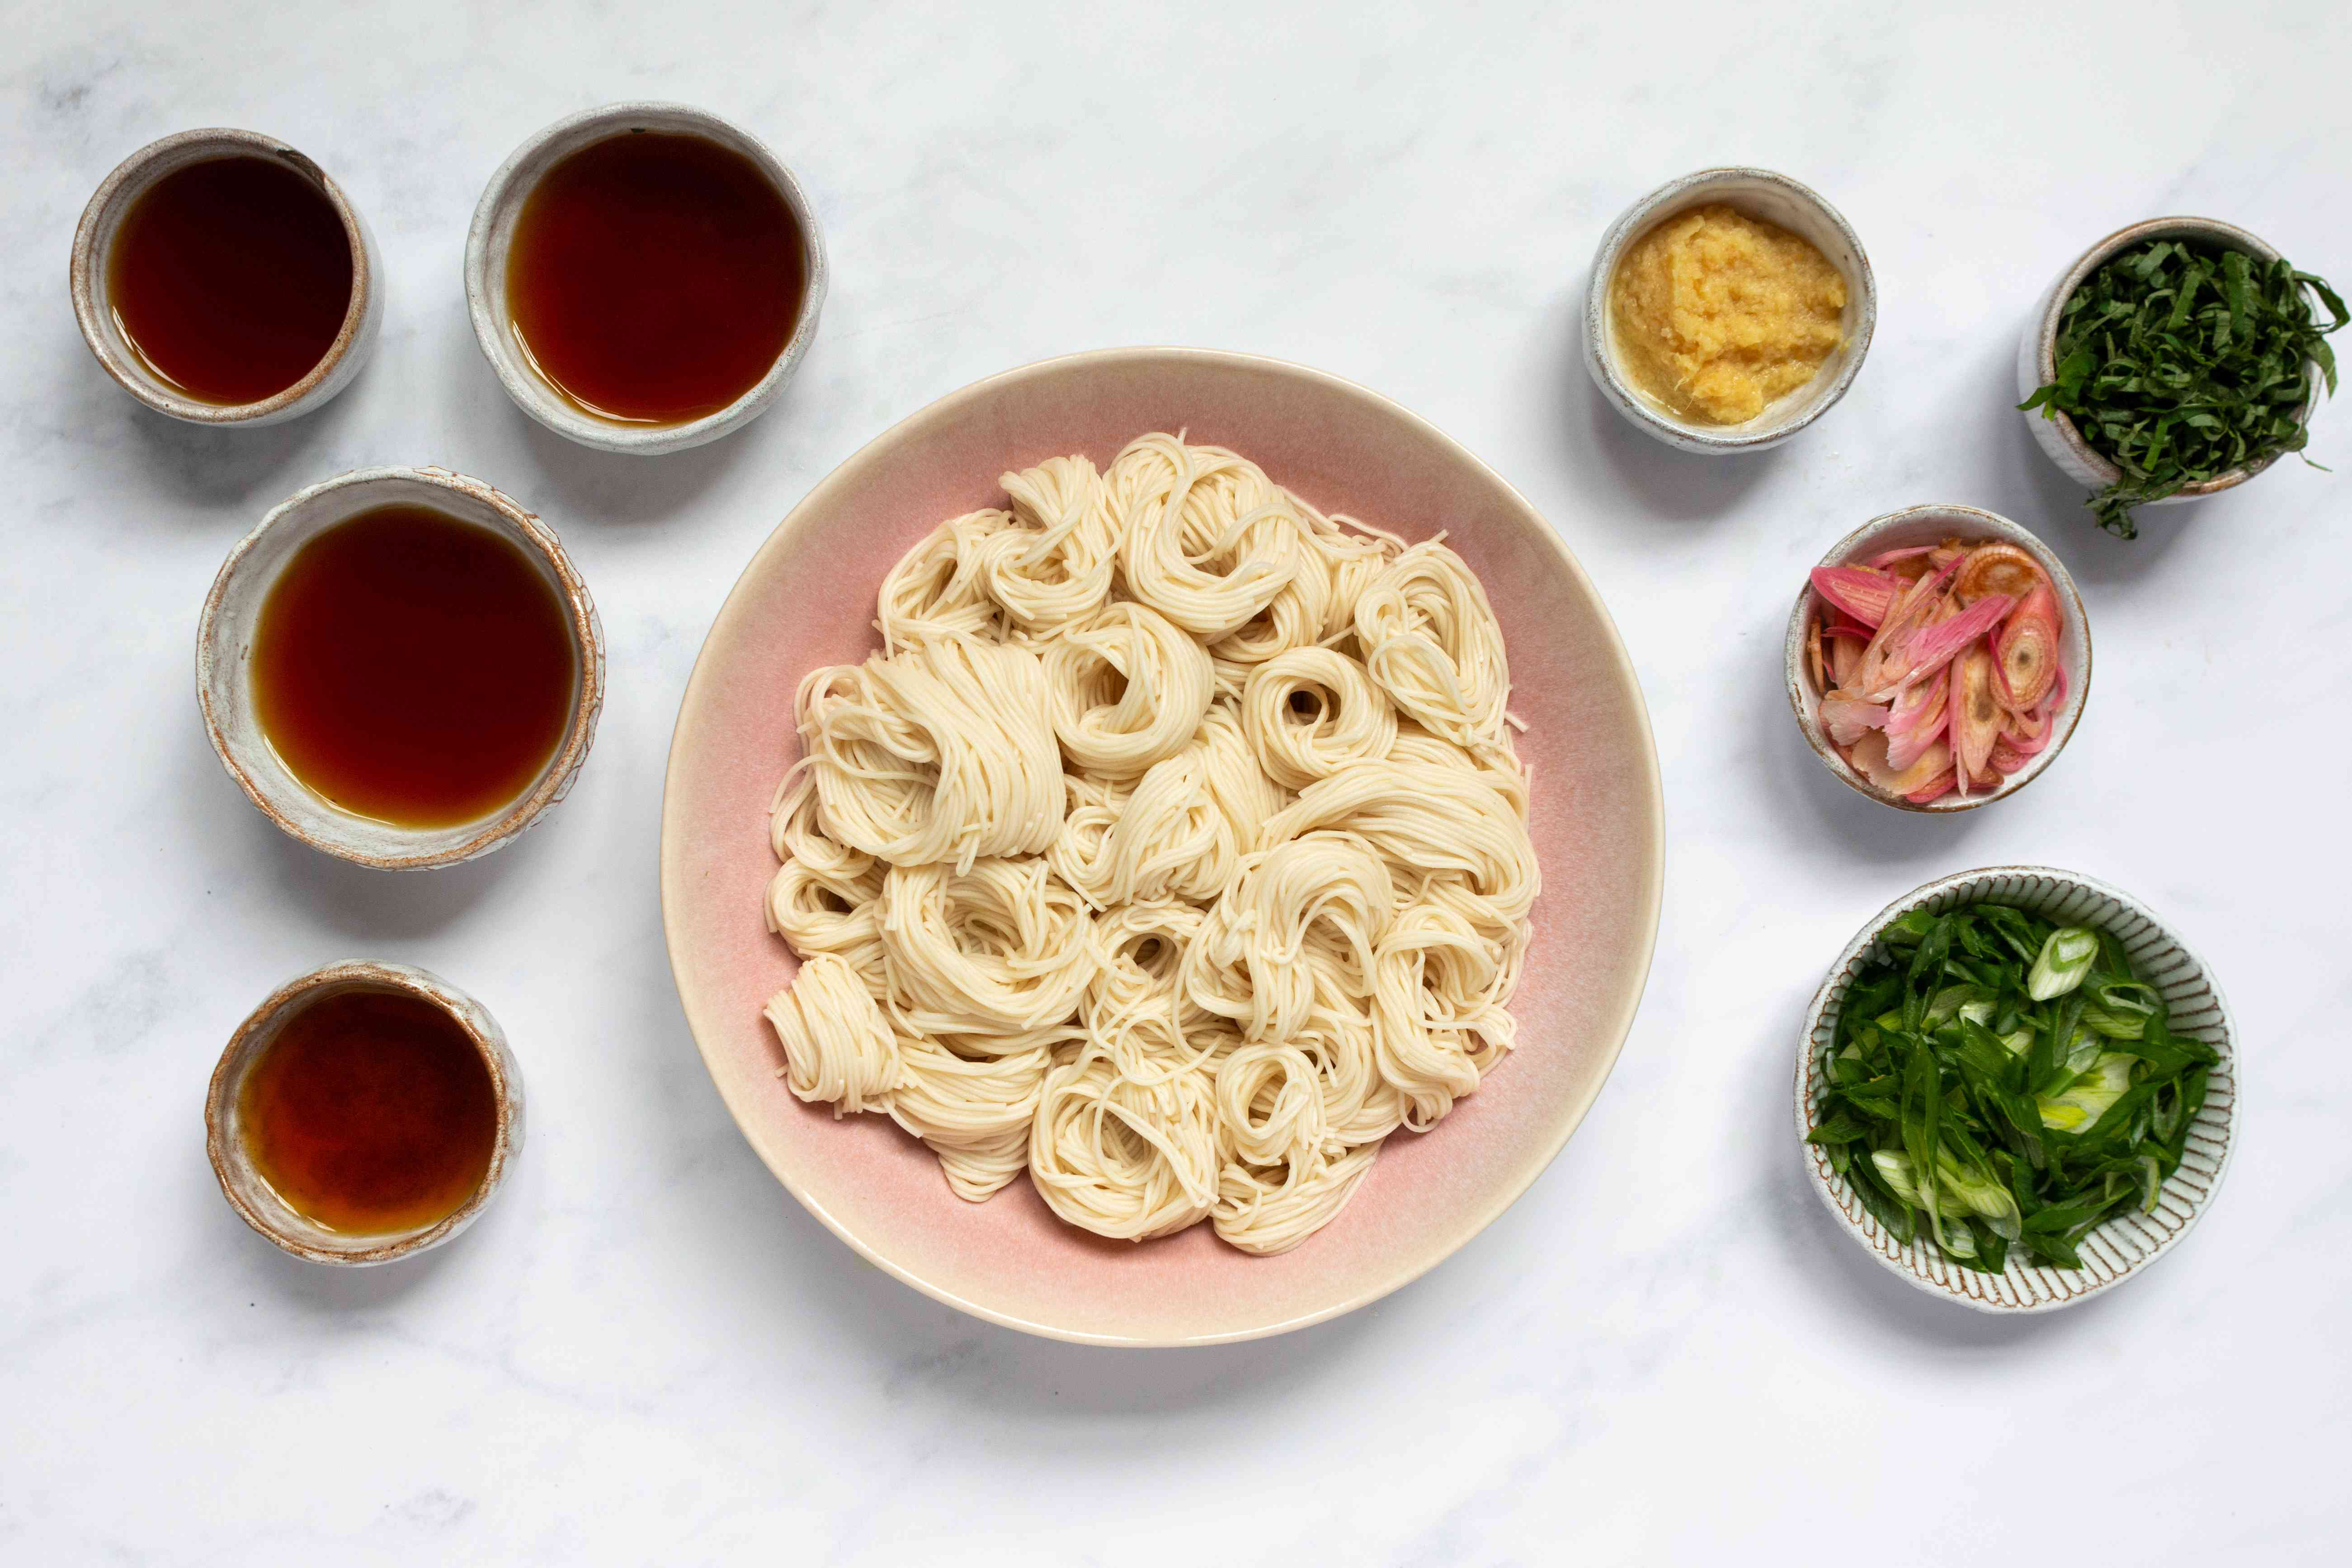 Japanese Cold Somen Noodles, with a side of sauce and toppings